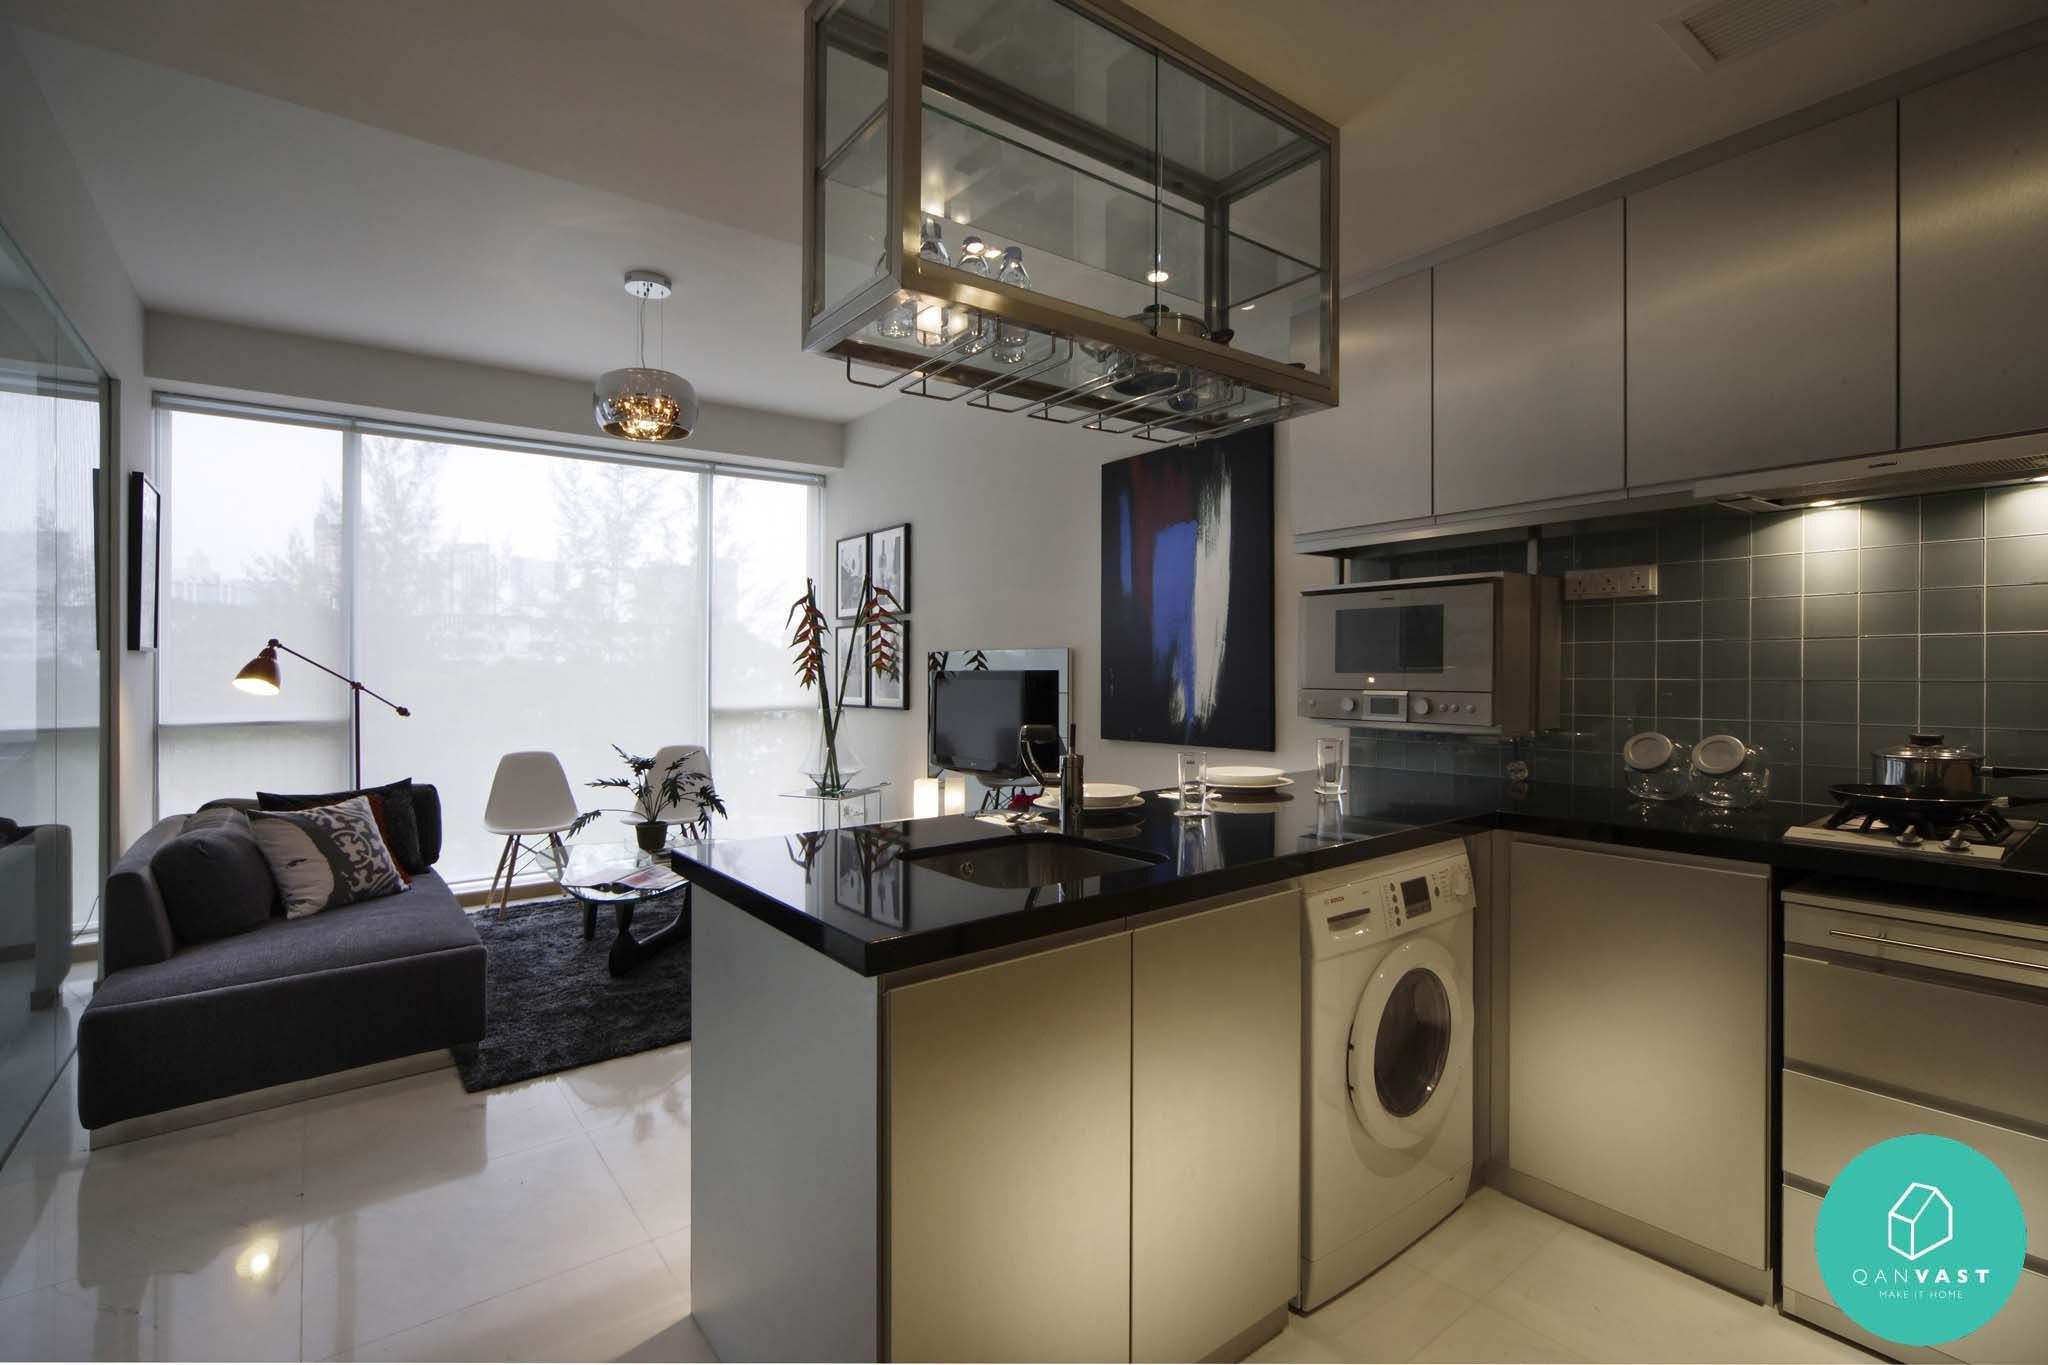 Uber Design House VIDA Should I Put The Washing Machine As Part Of Kitchen And Expand Space Or Just Leave It In Separate Wash Area Since Will